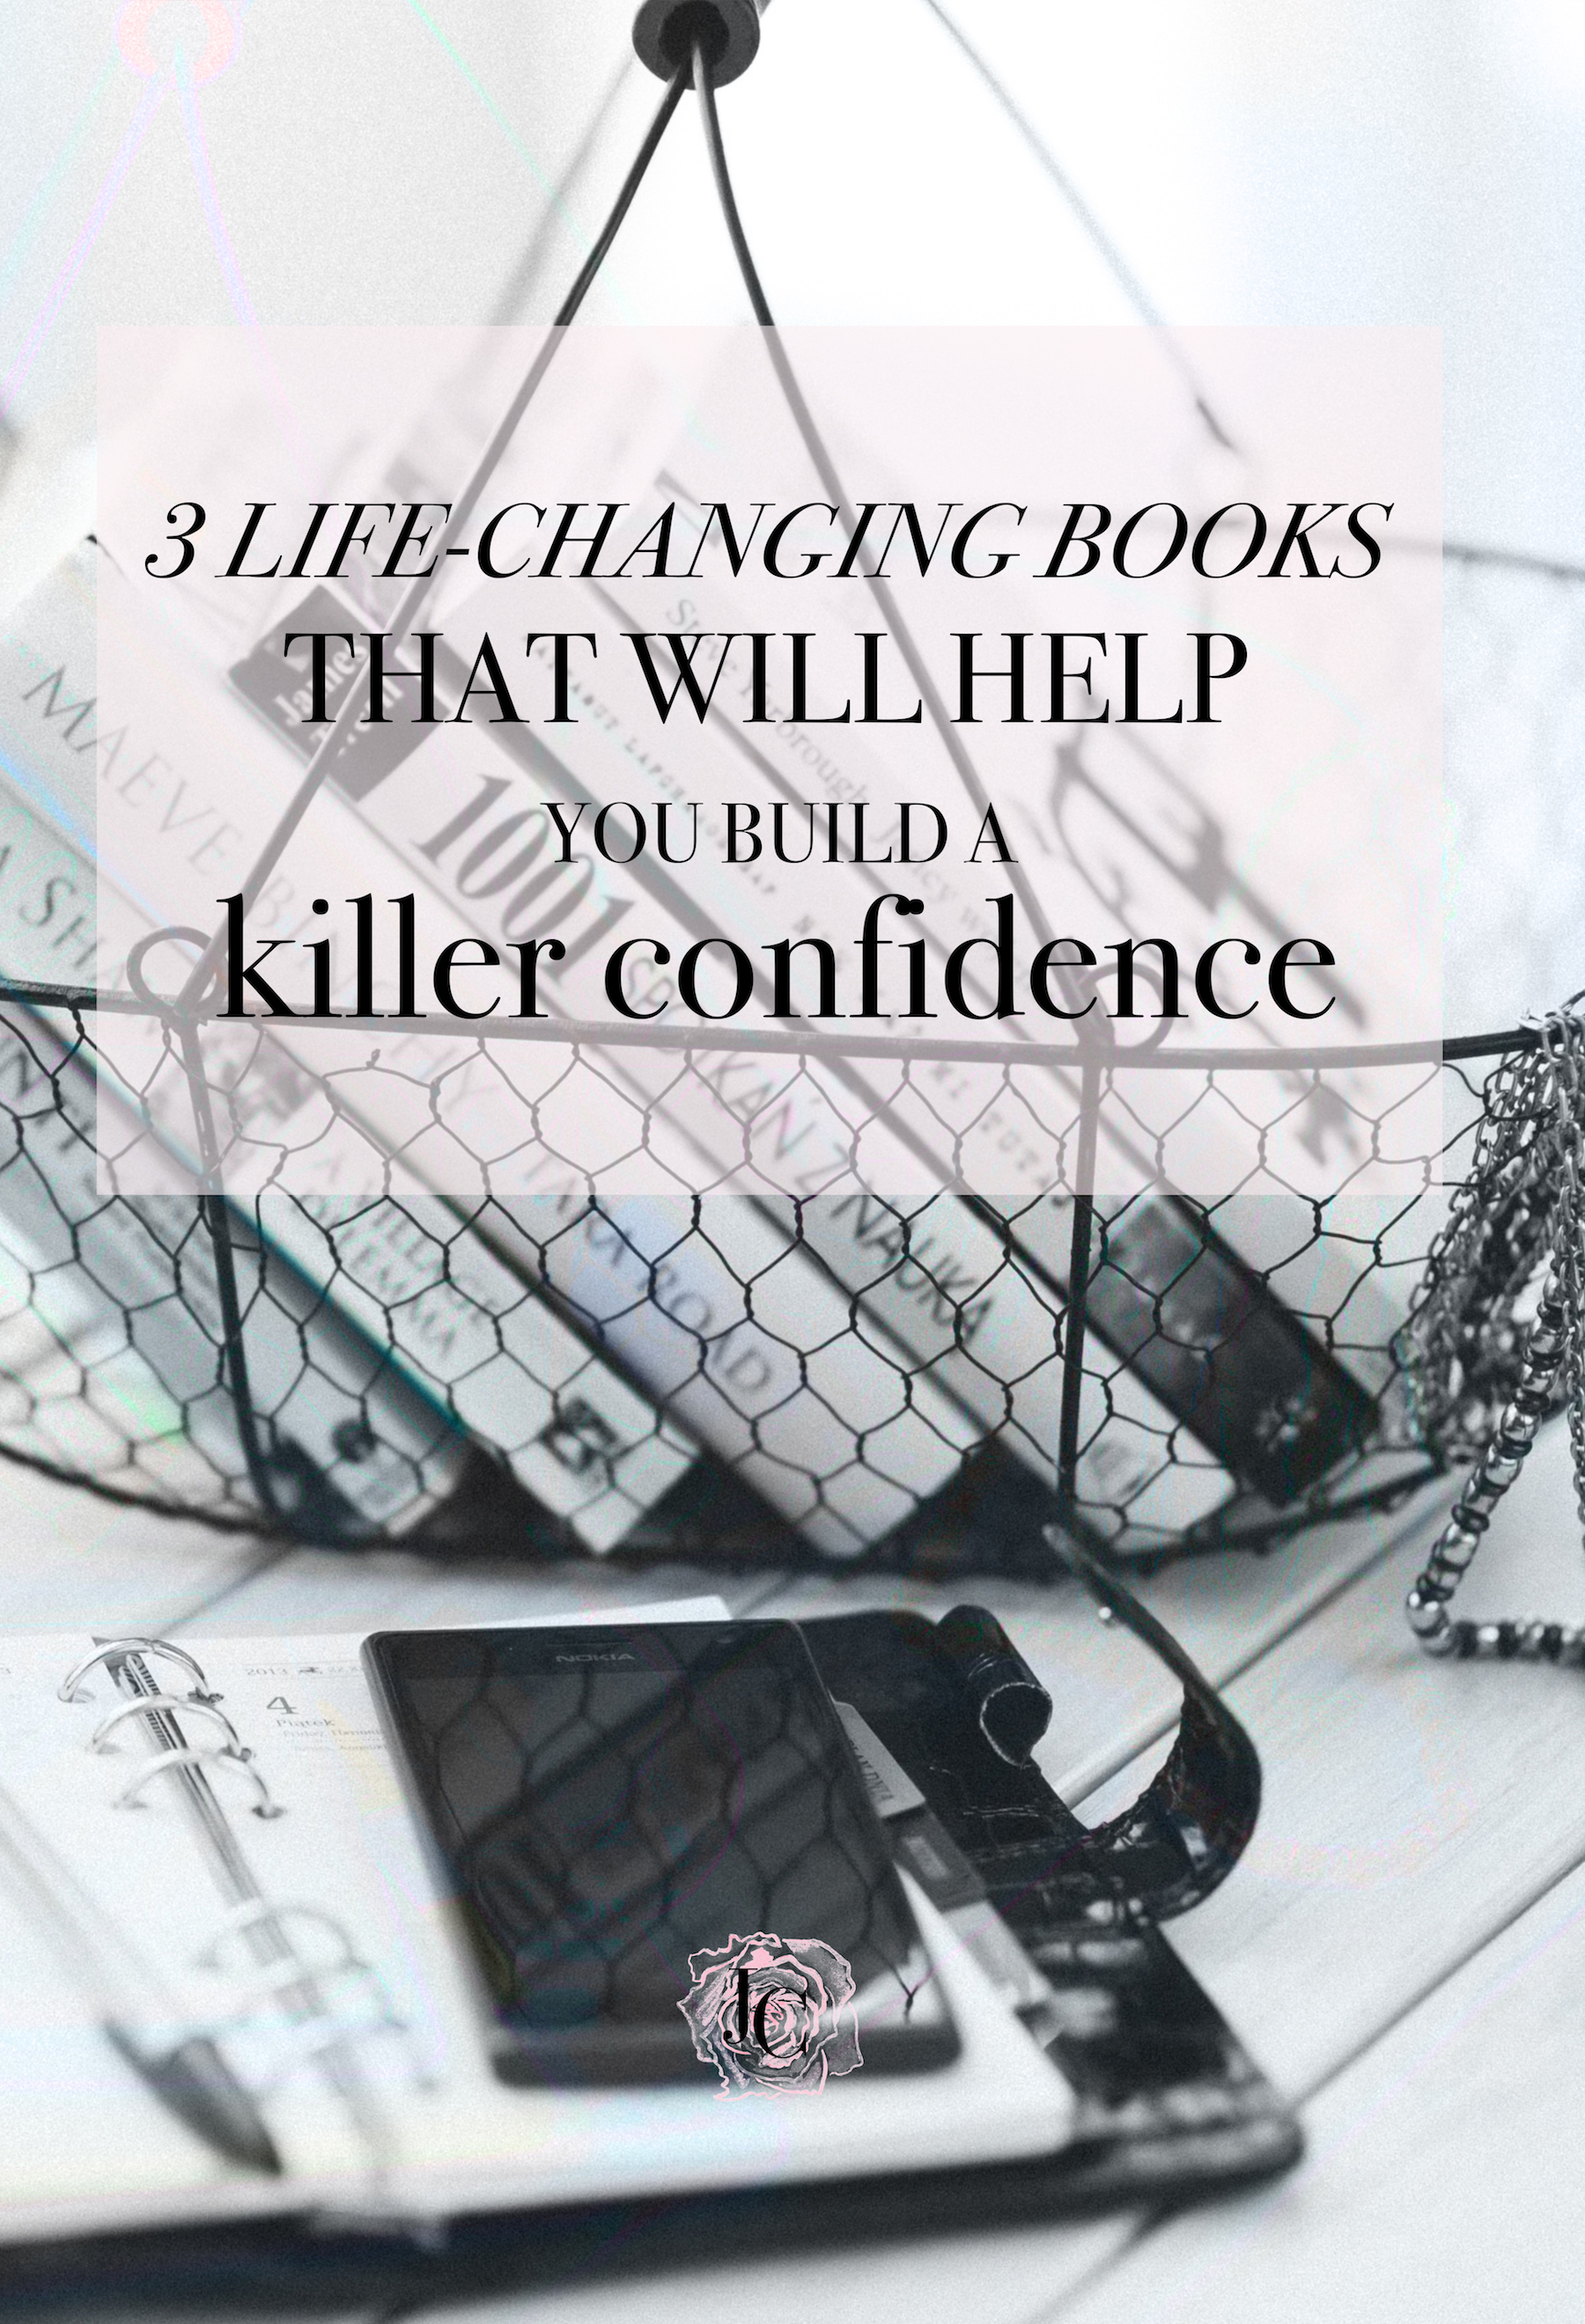 3--life-changing-books-that-will-help-you-build-killer-confidence